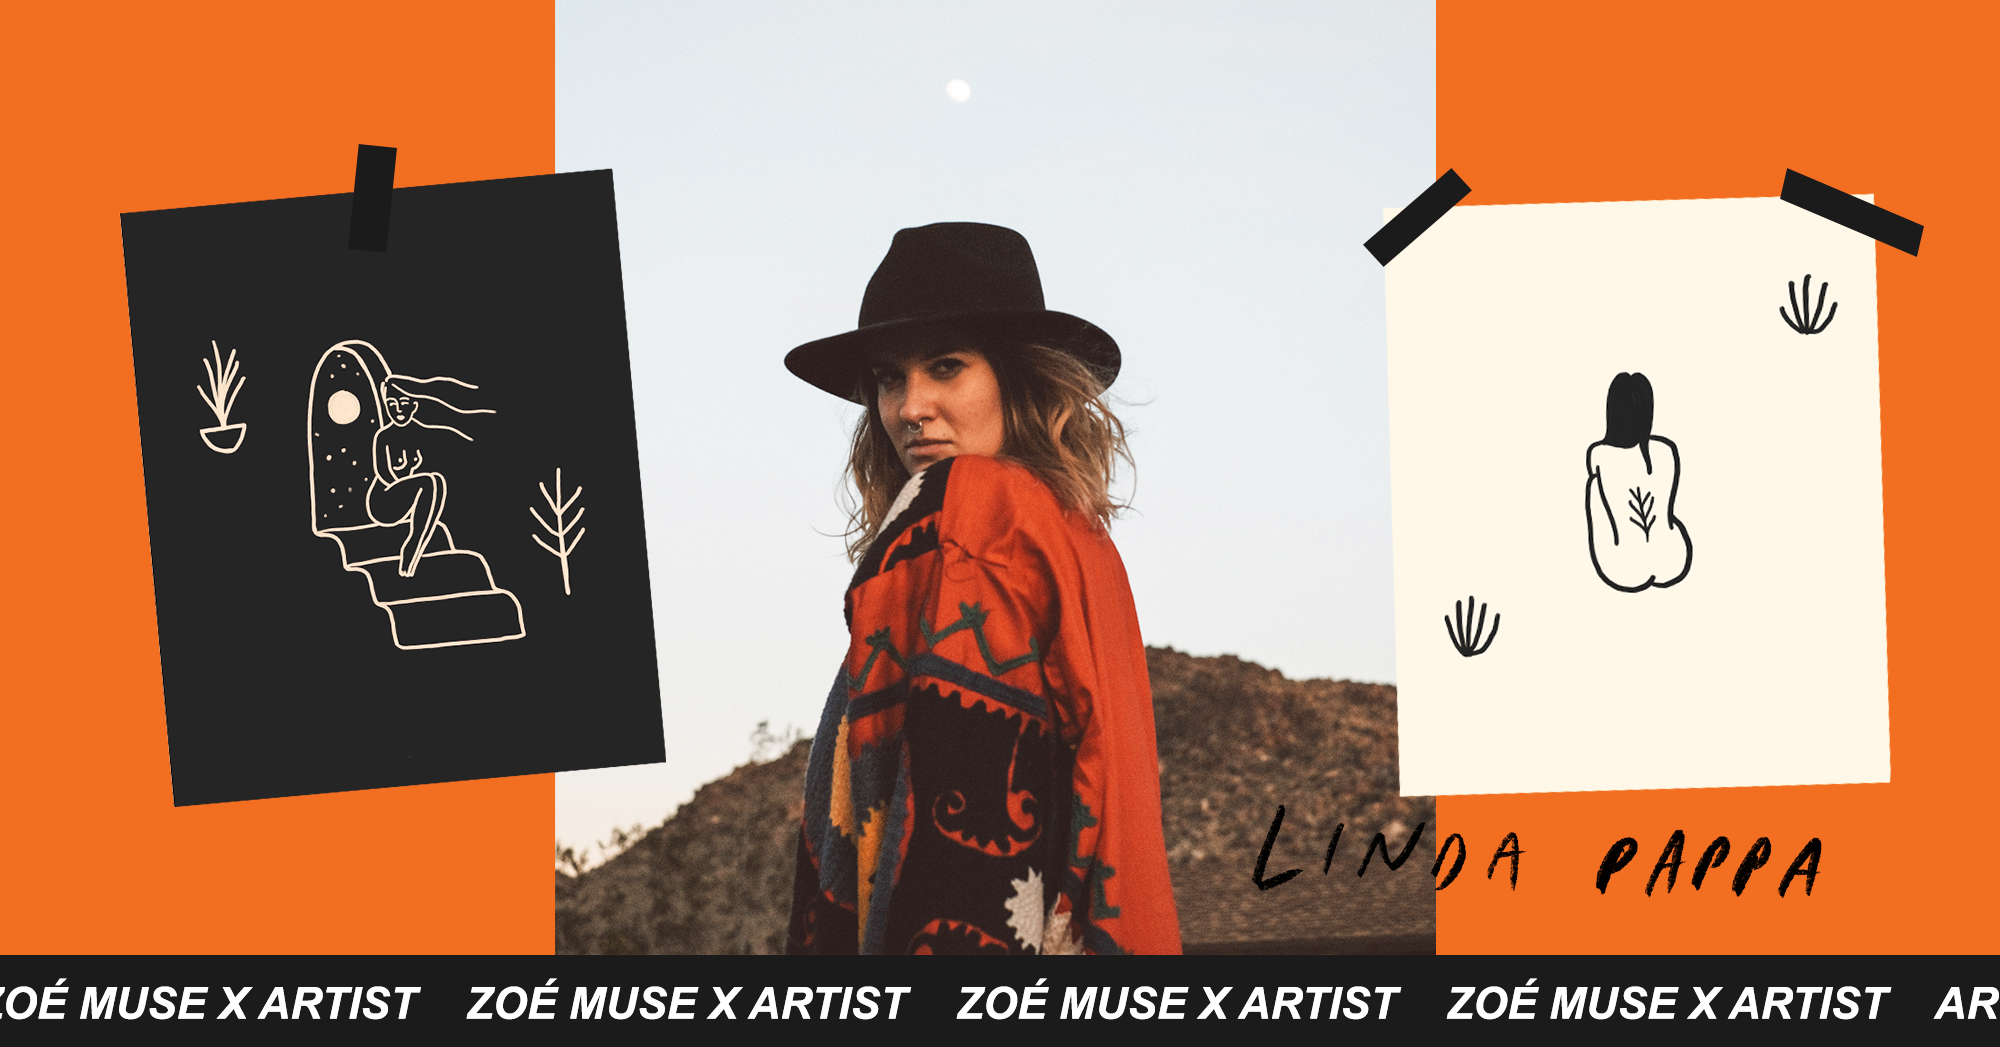 Linda Pappa x Zoé Muse | GREECE